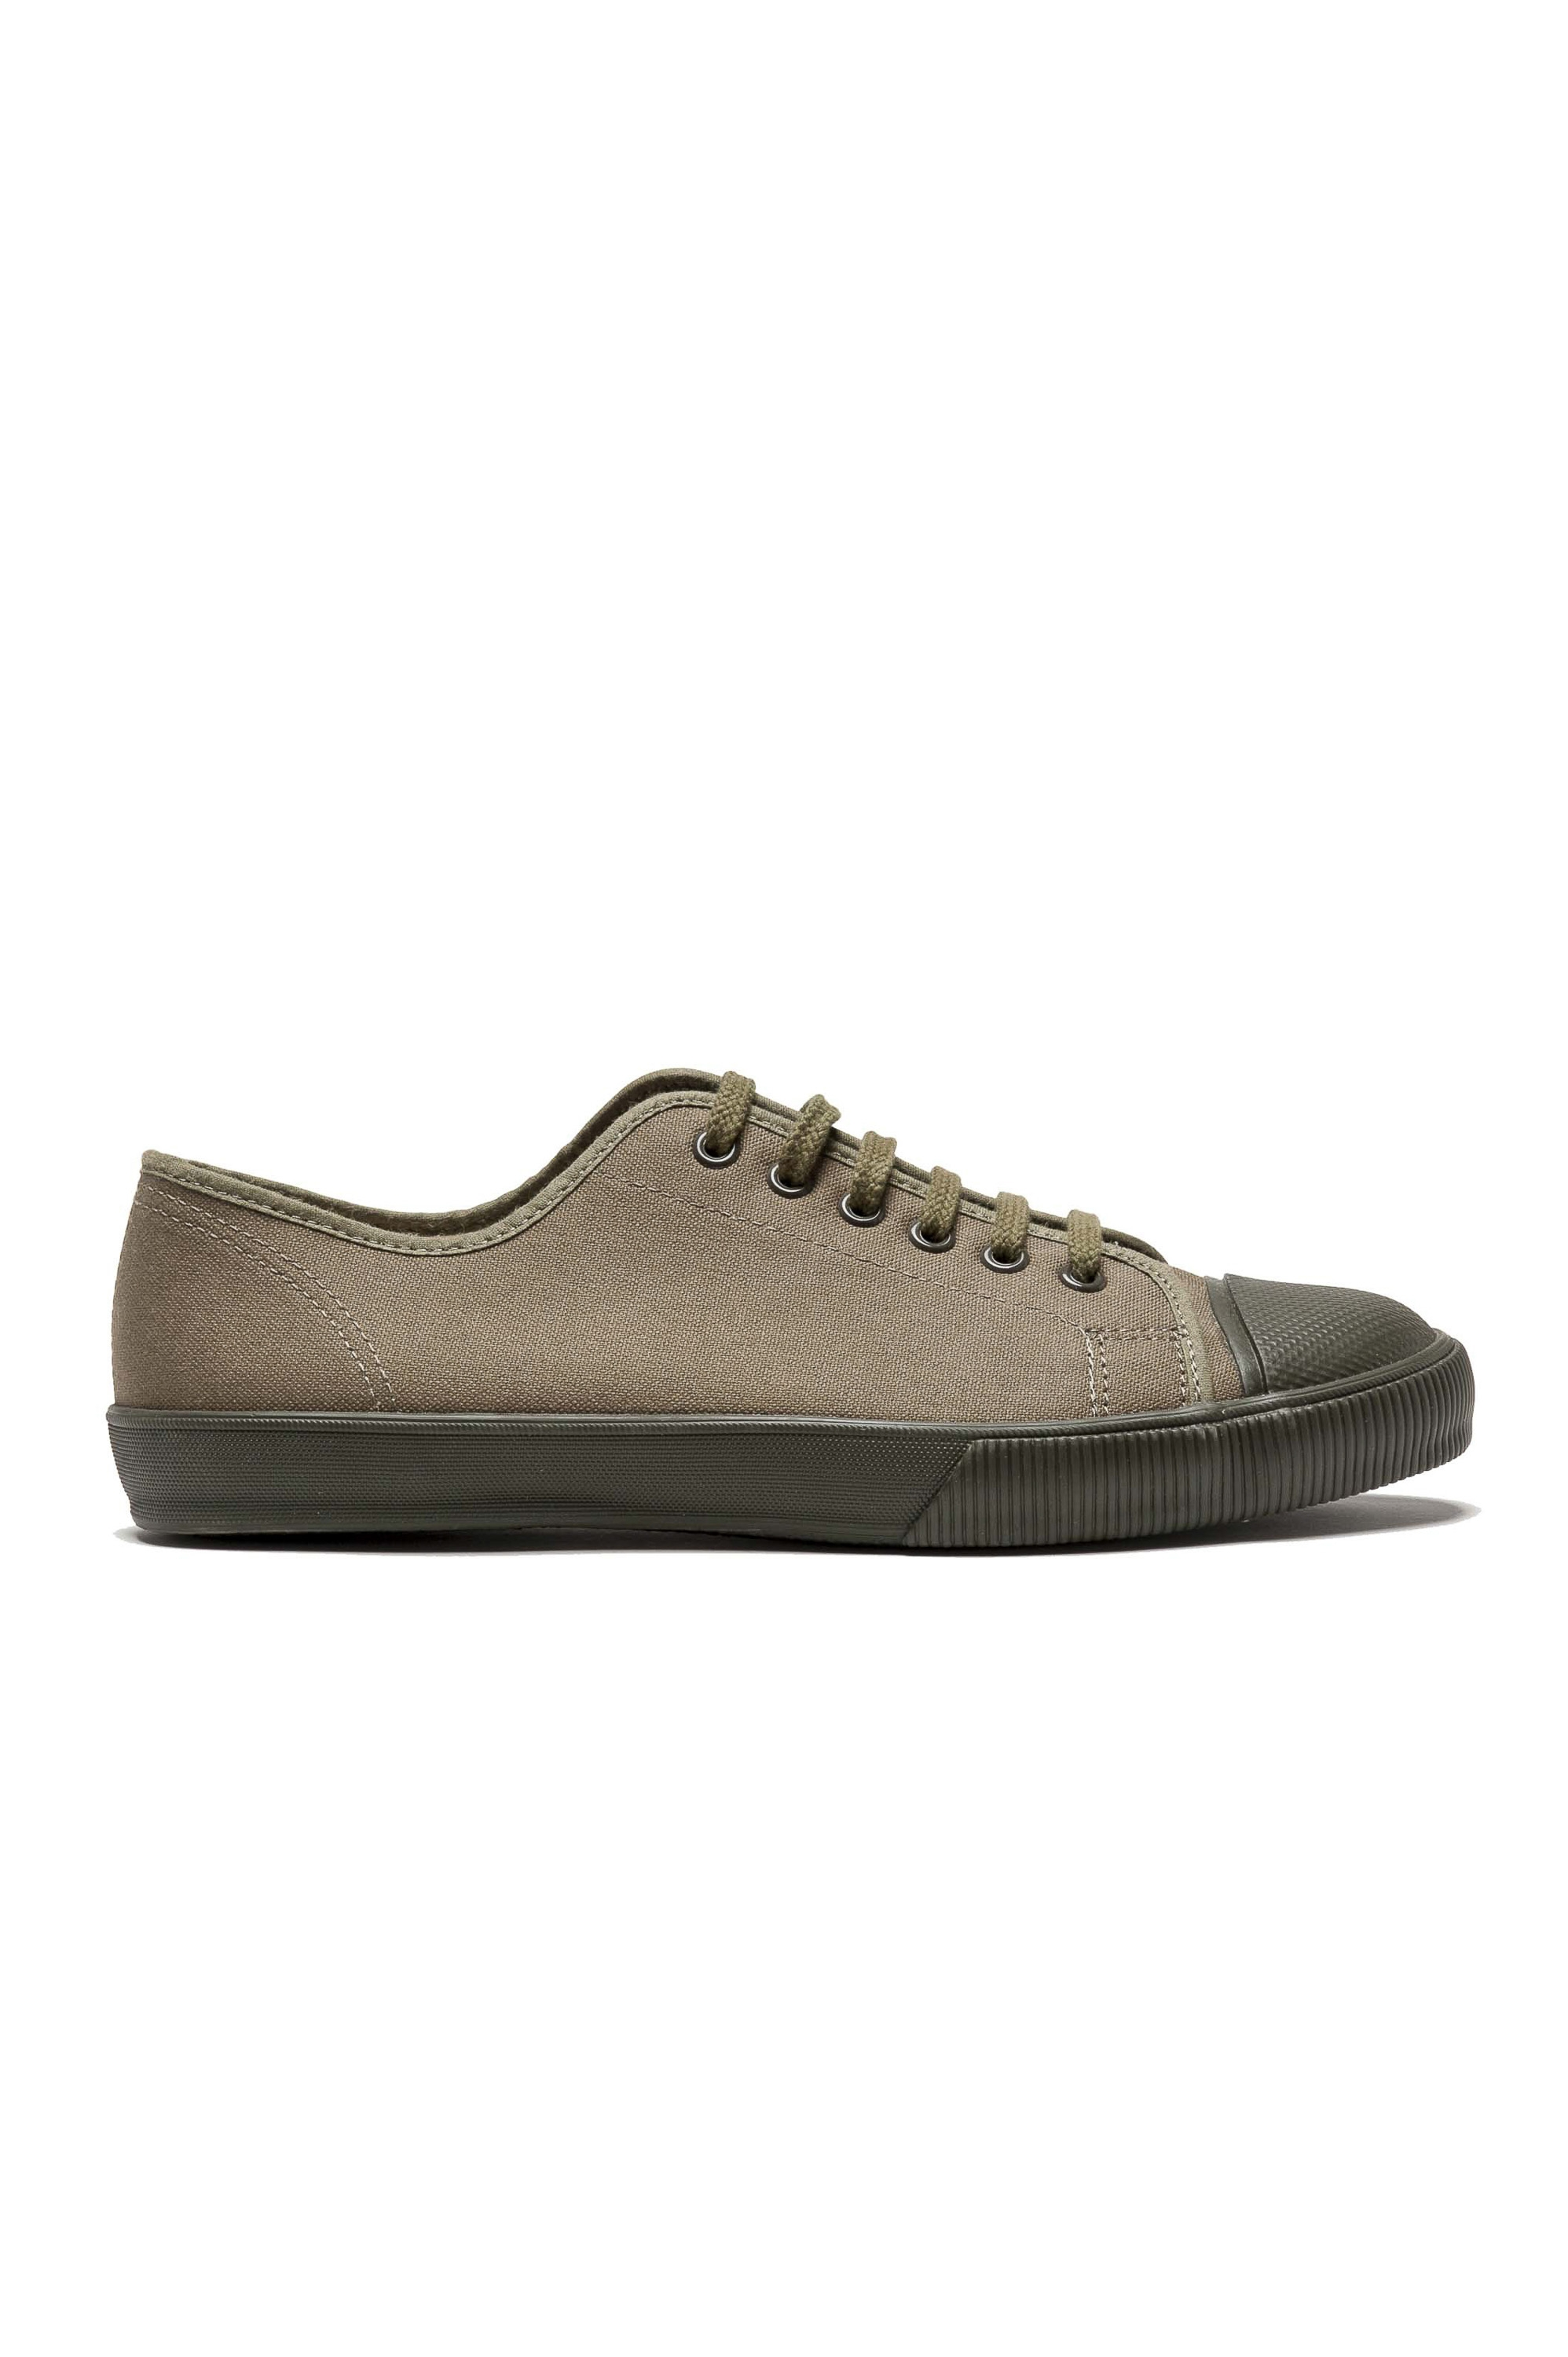 SBU 01530 Classic lace up sneakers in in green cotton canvas 01